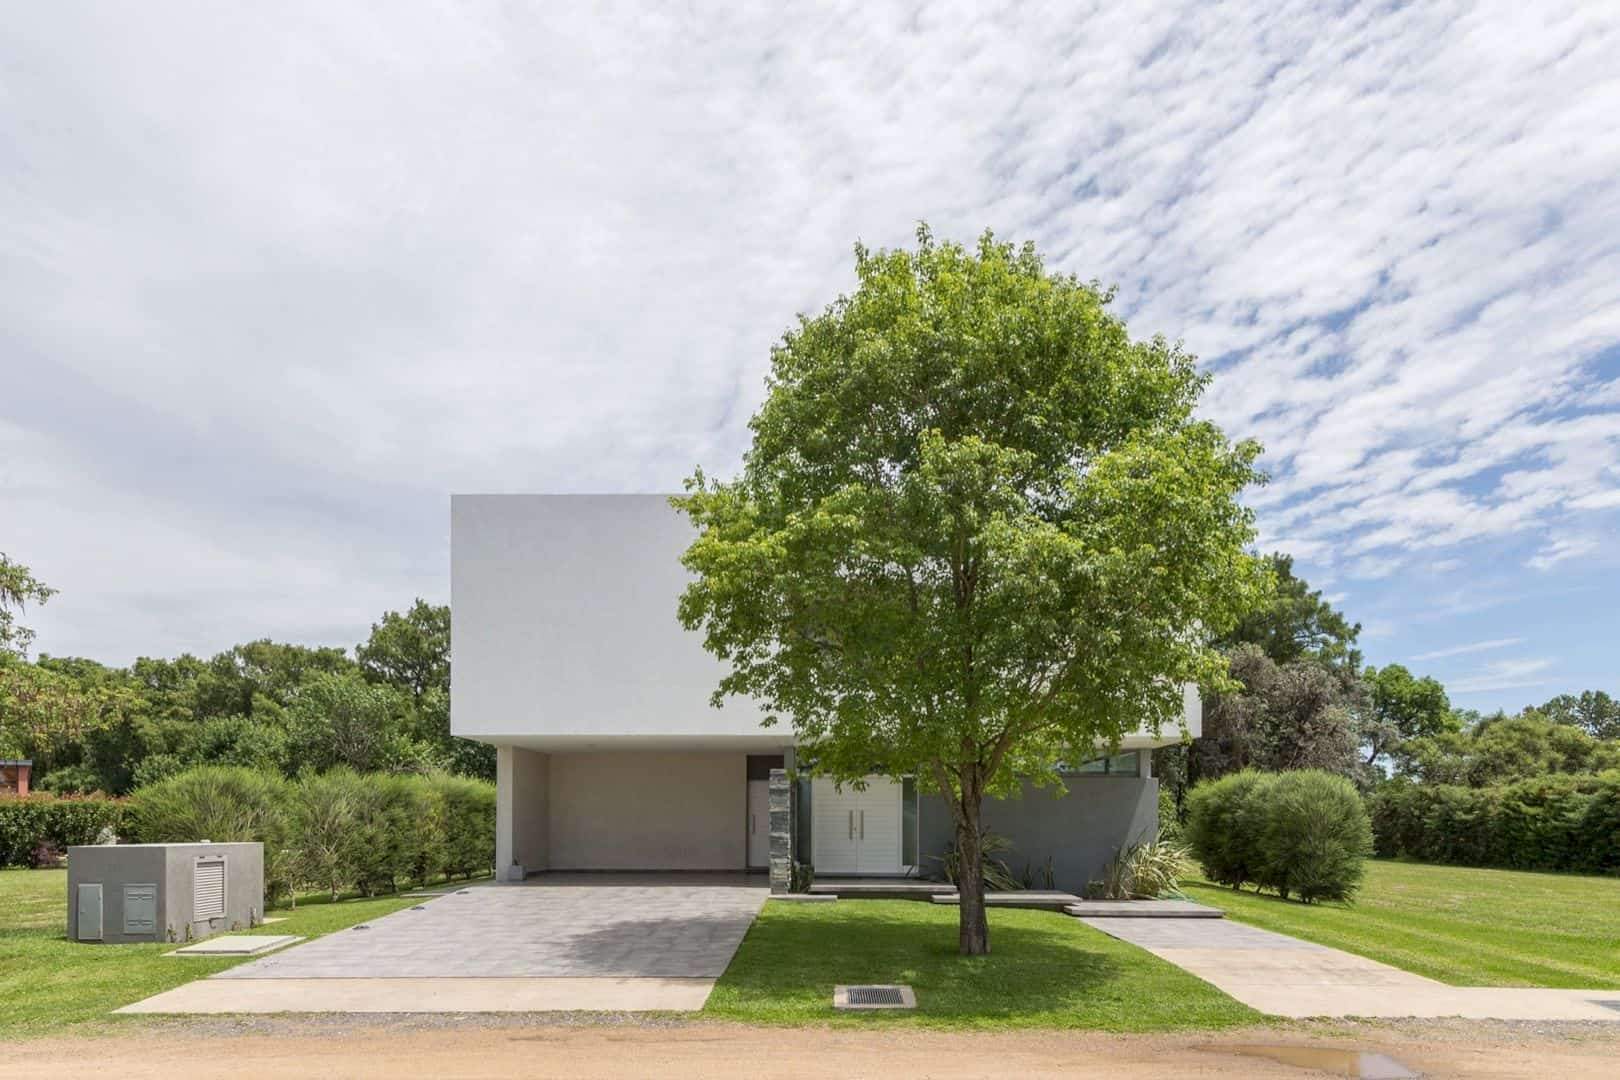 House In El Paso Enhancing The Relationship Inside With The Surrounding Landscape 9